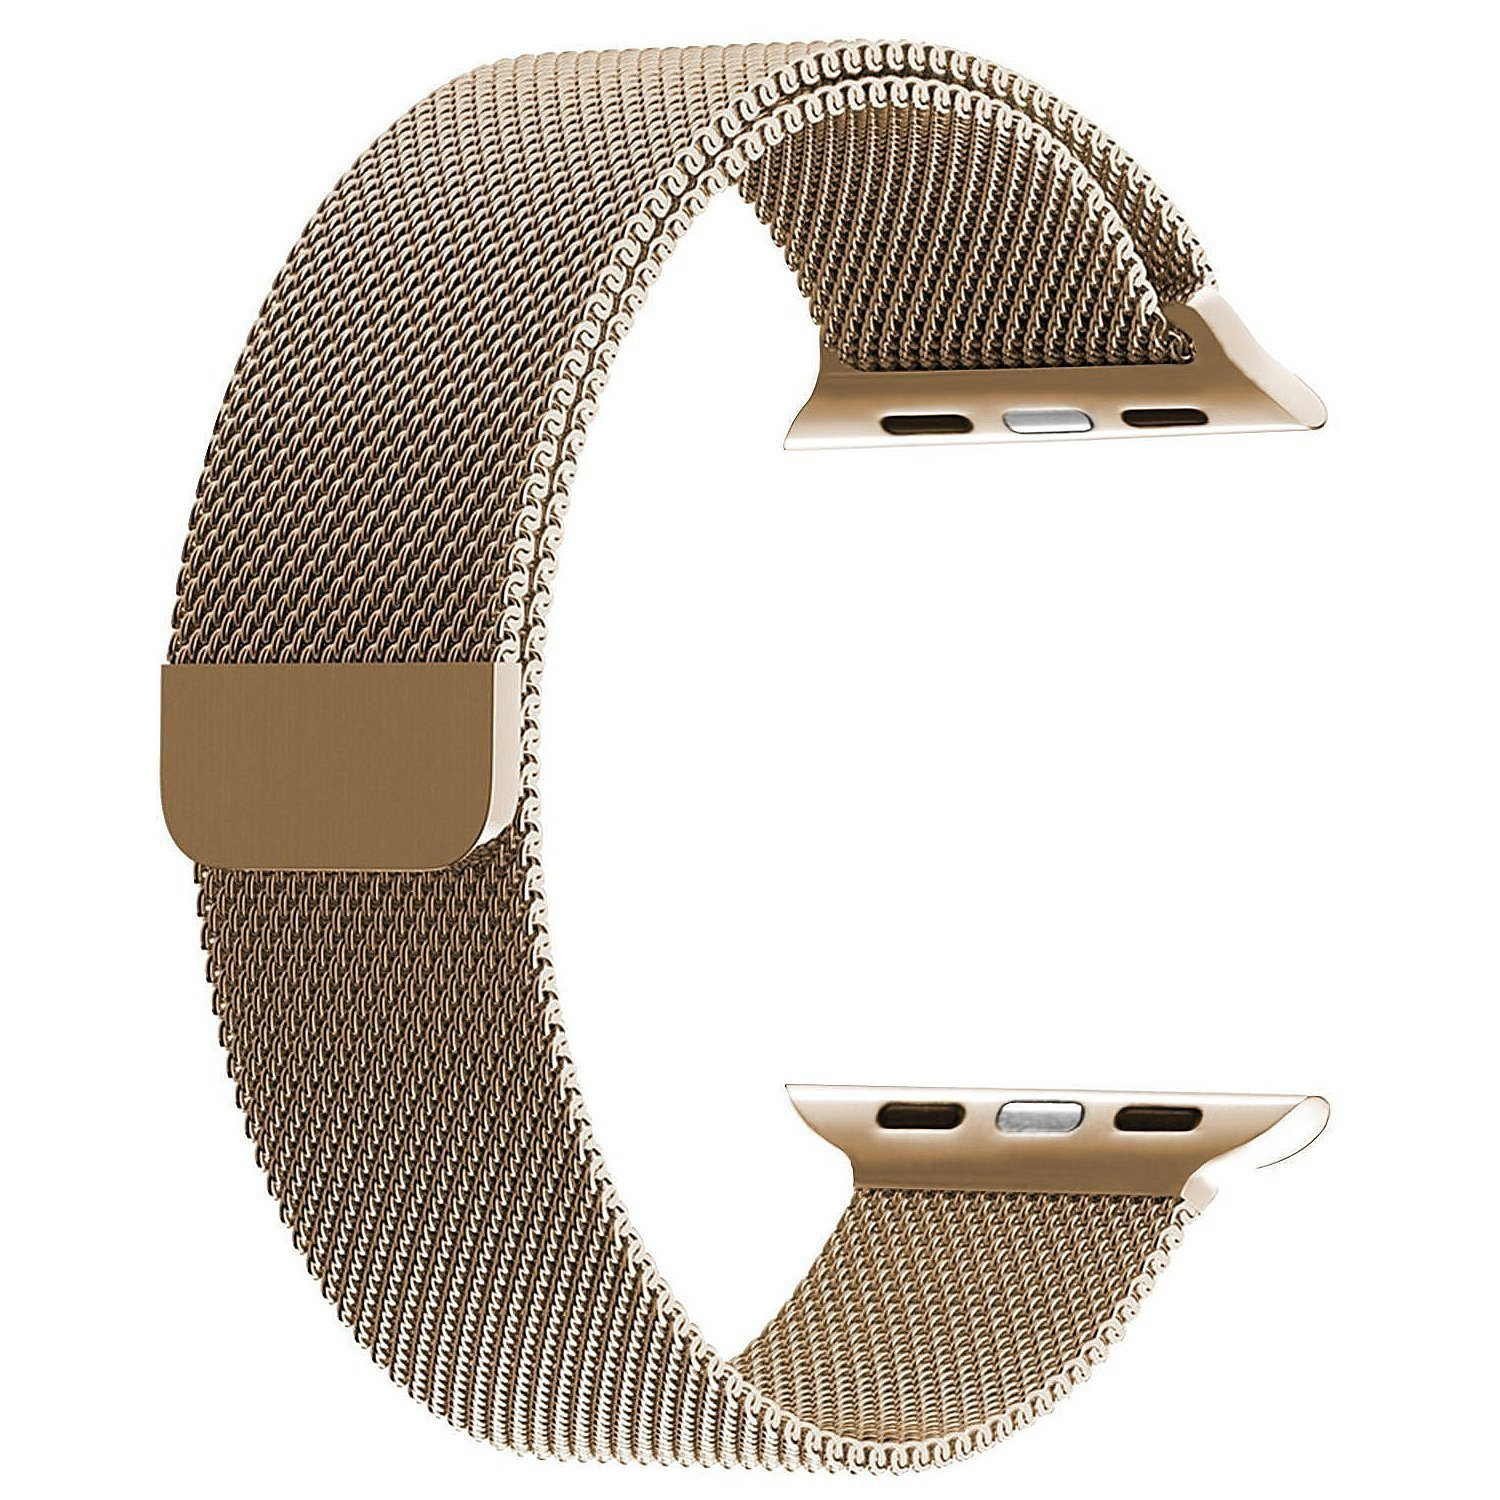 Apple Watch Band, BRG Milanese Loop Stainless Steel Bracelet Strap Replacement Wrist iWatch Band with Magnet Lock for Apple Watch Series 1 Series 2 - 42mm Gold